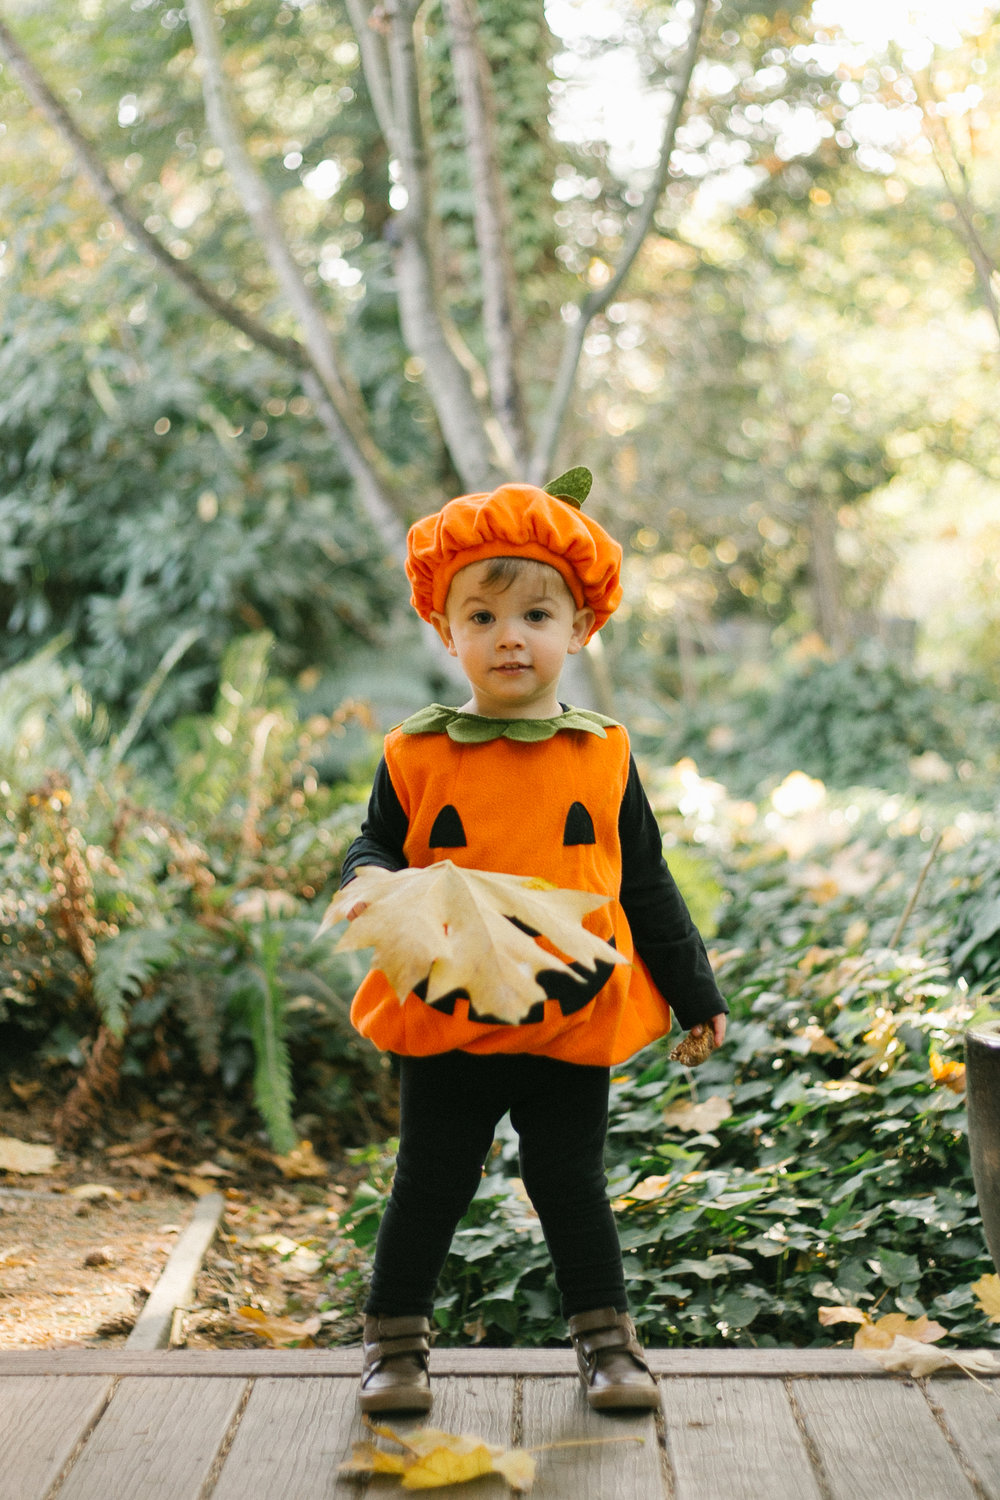 Halloween Kid Portraits at Home | Chelsea Macor Photography-9.jpg